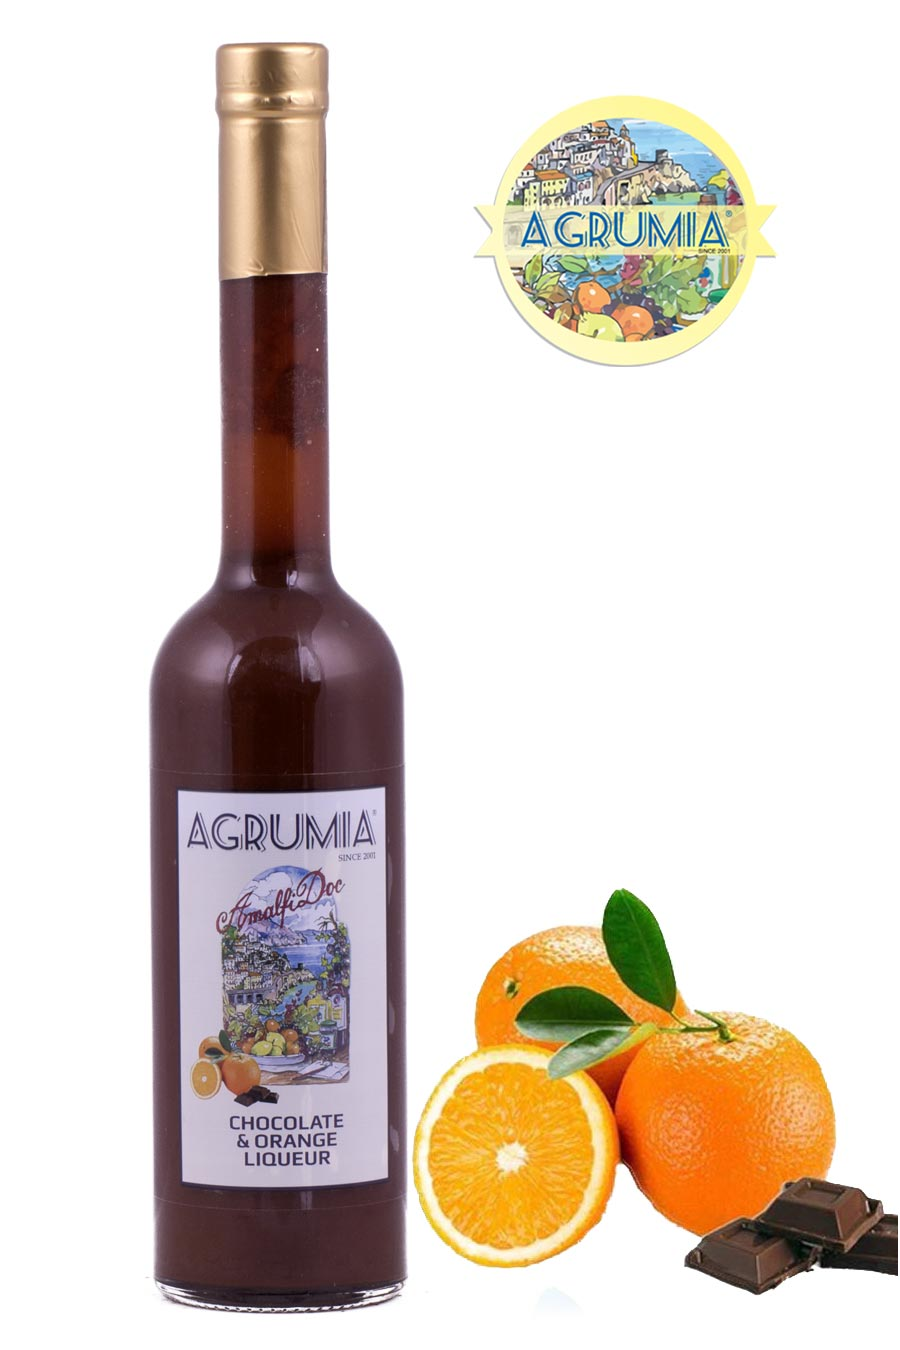 Agrumia Chocolate and Orange Liqueur 50cl - Agrumia